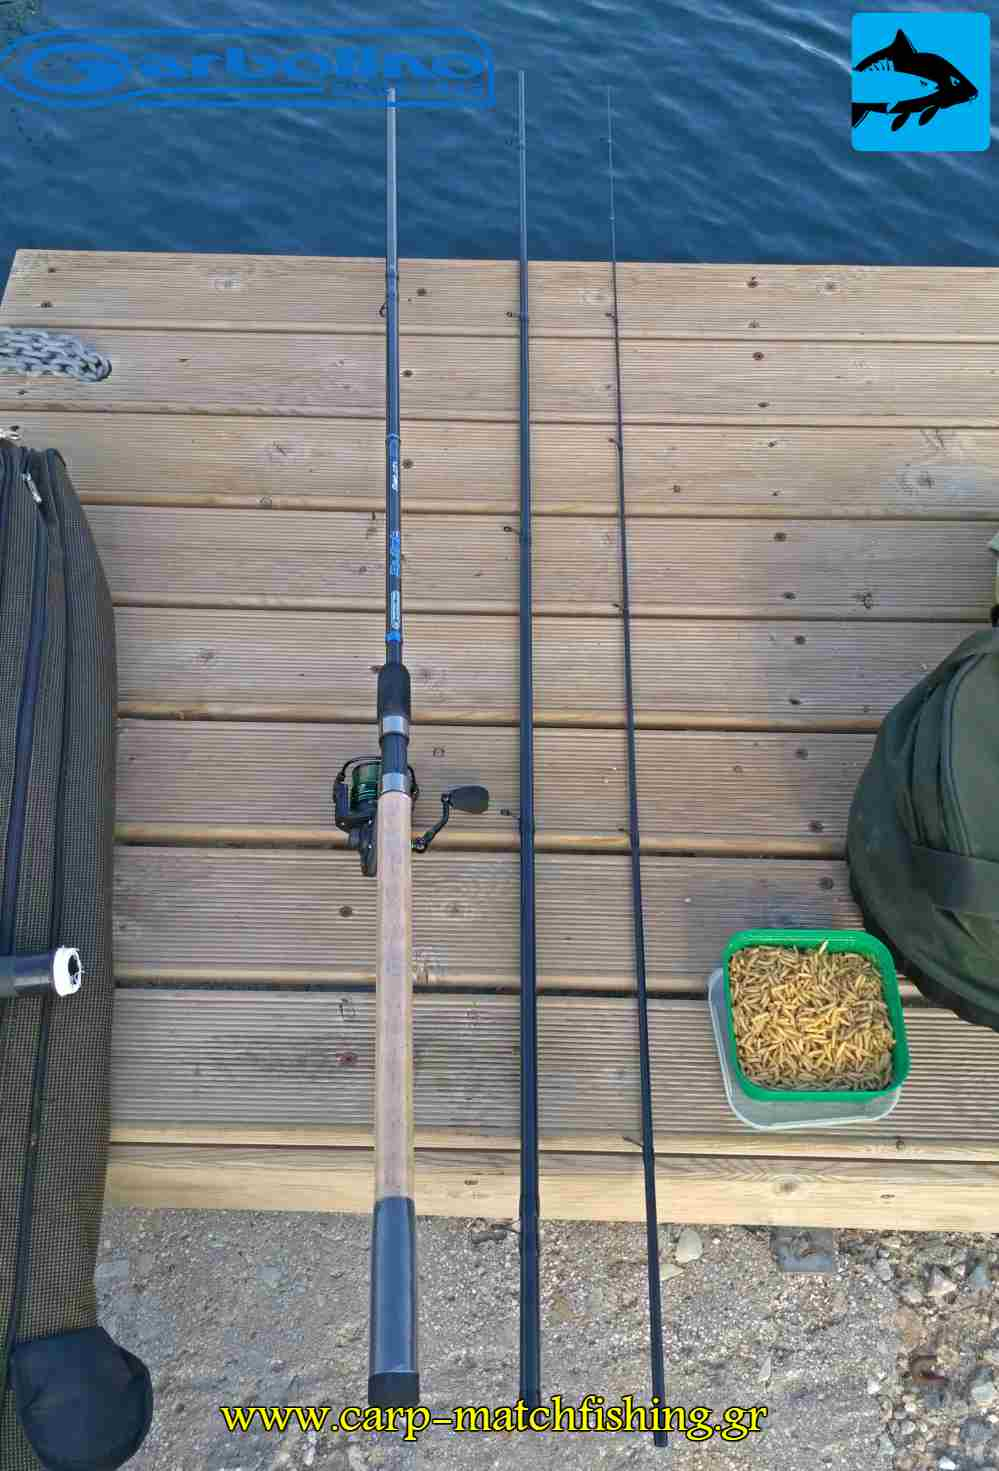 garbolino 3 section match rod carpmatchfishing